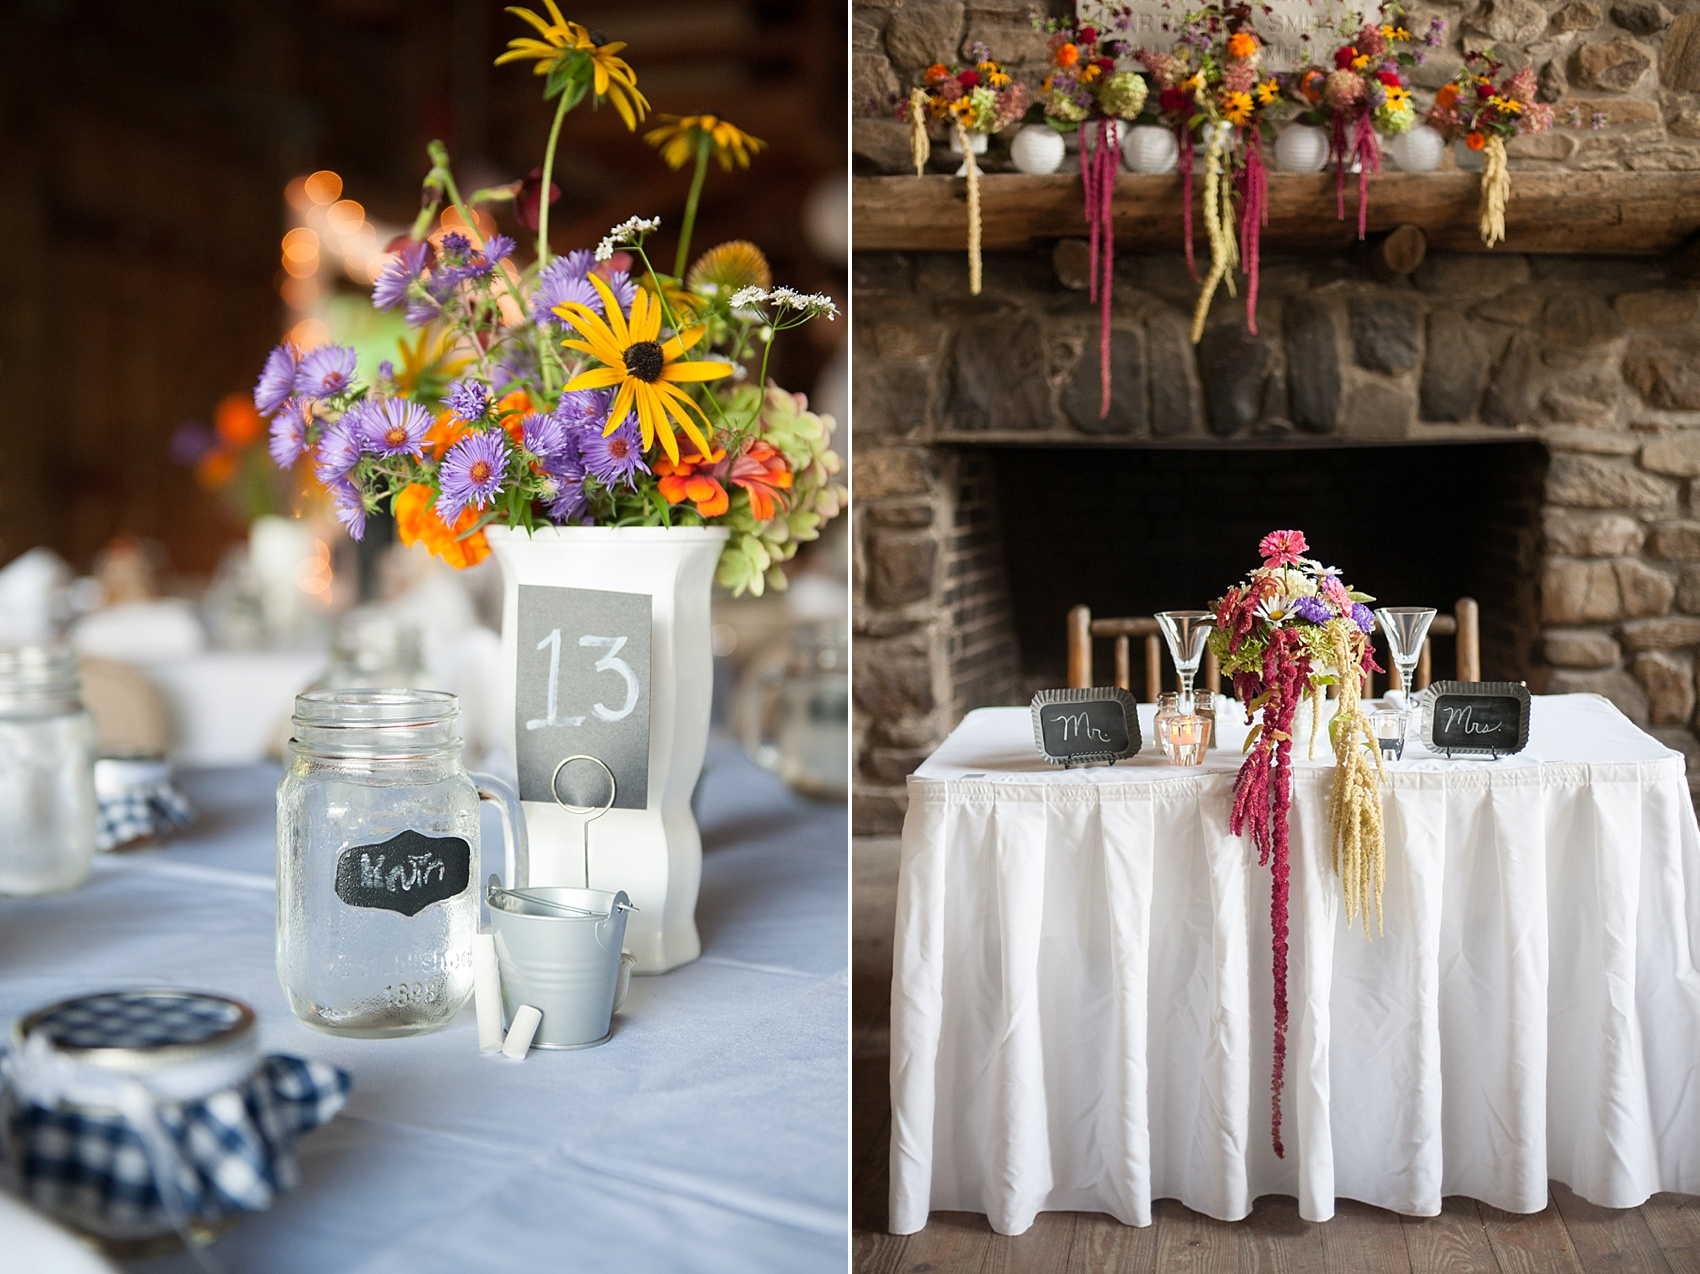 Rustic Berkshires camp wedding wildflowers. Photos by Massachusetts wedding photographer, Mikkel Paige Photography.